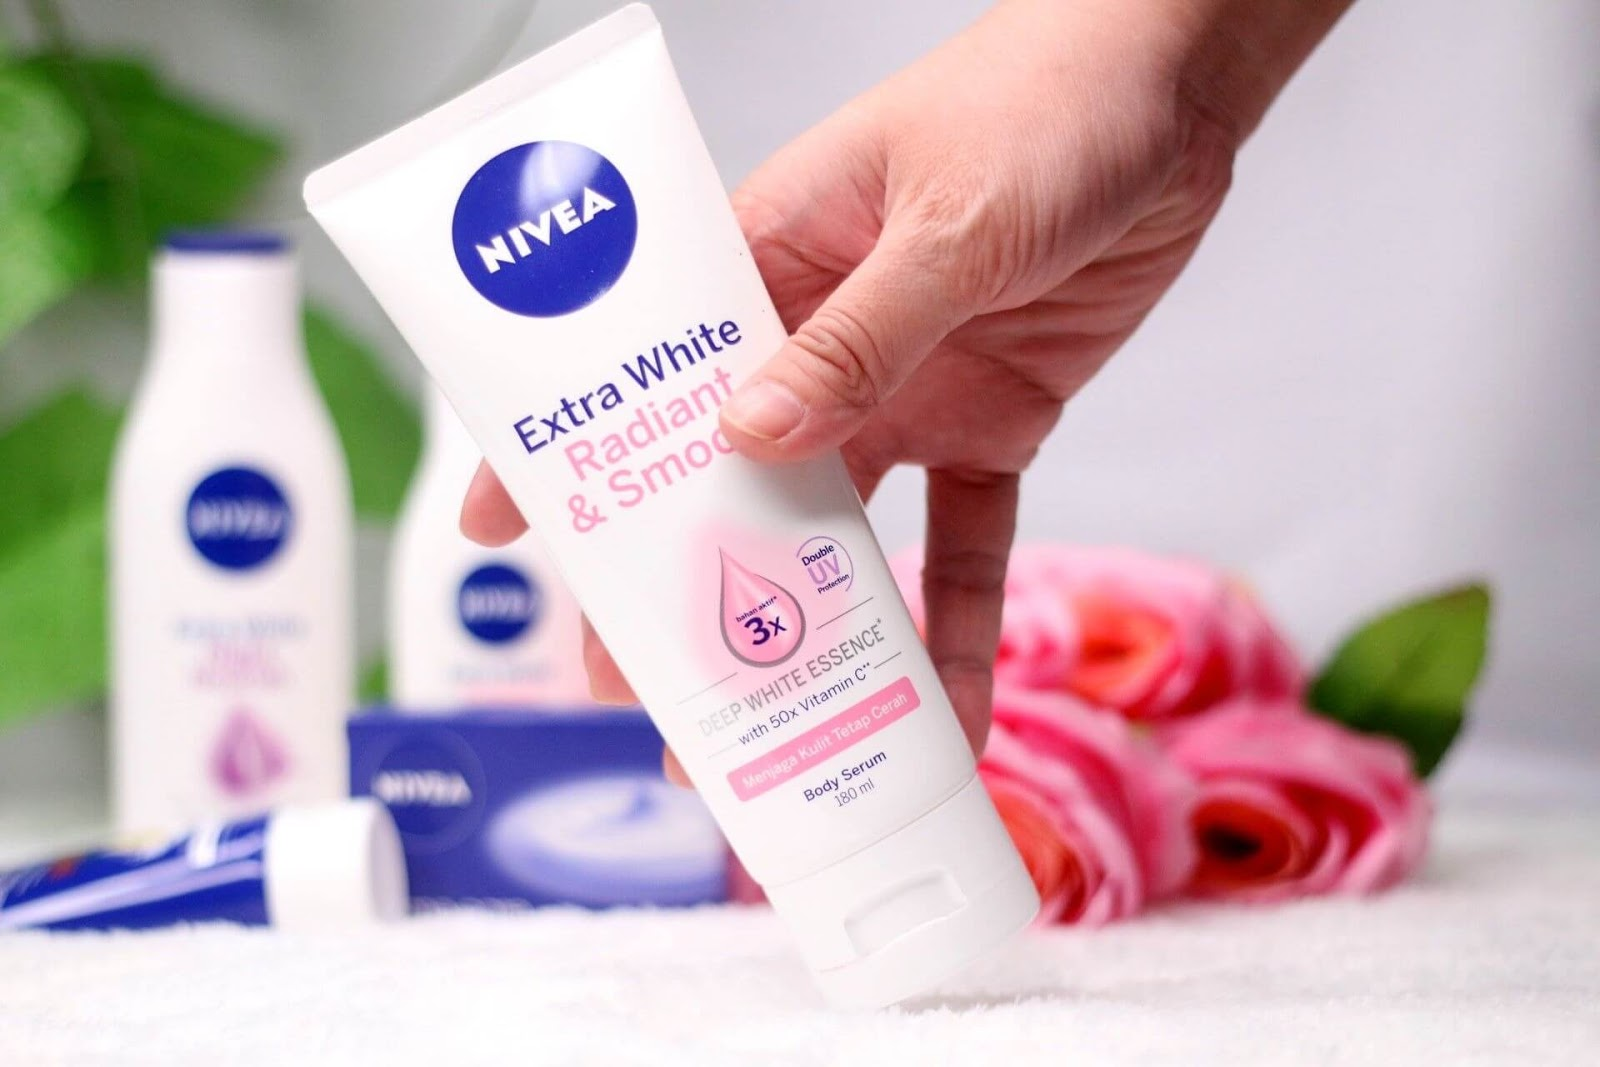 nivea-radiant-smooth-body-serum